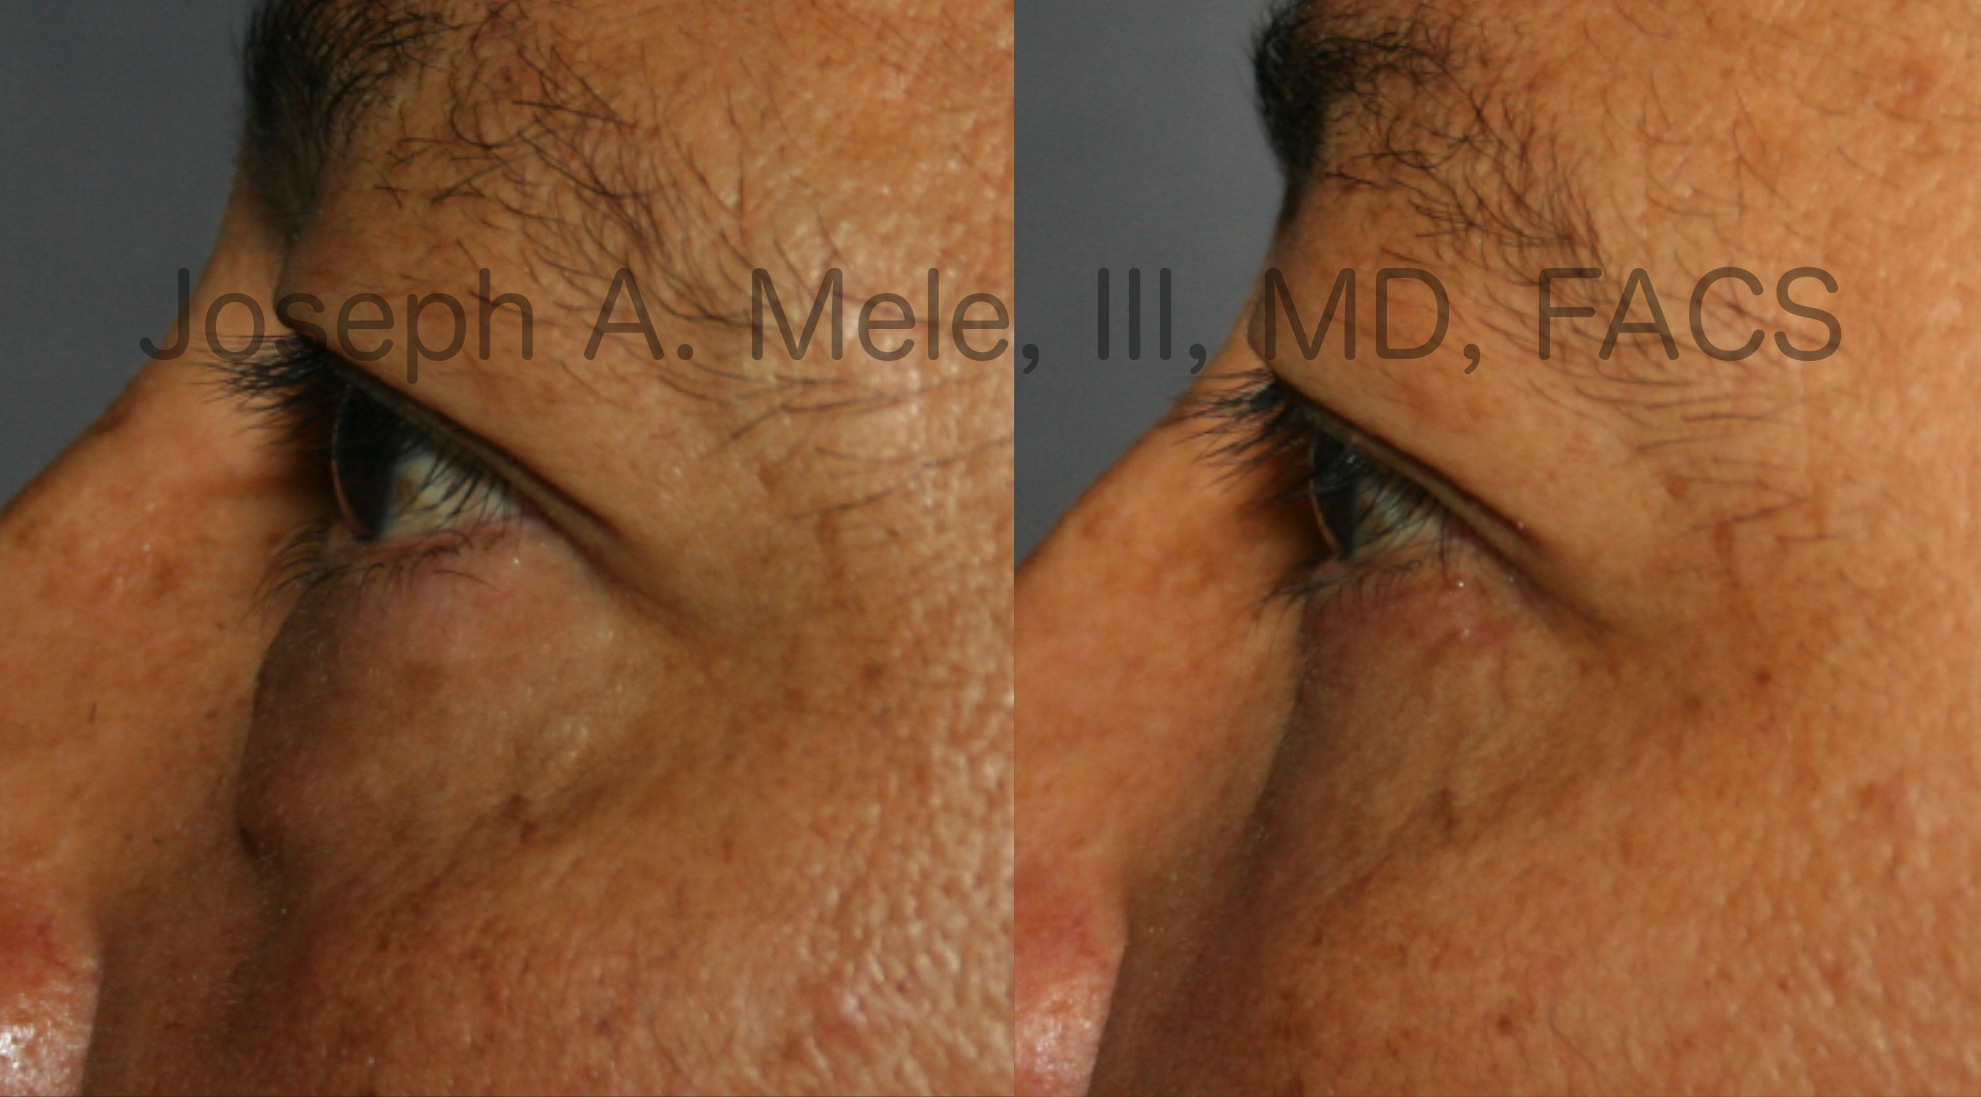 Lower Eyelid Lift before and after pictures (Blepharoplasty)